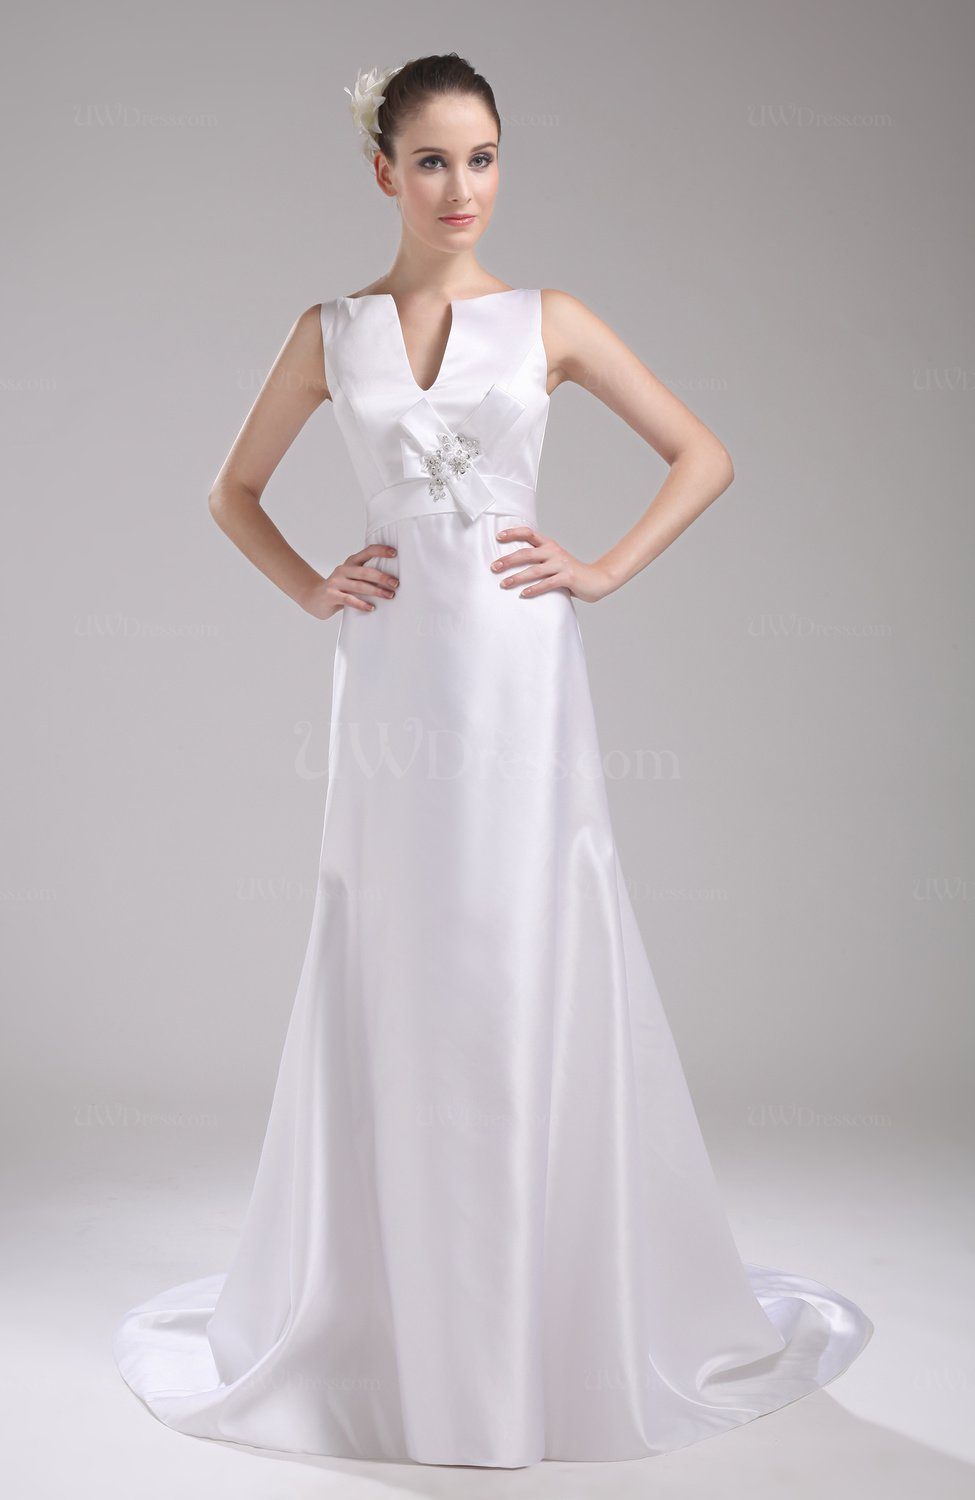 White Elegant Hall V Neck Sleeveless Zip Up Satin Bridal